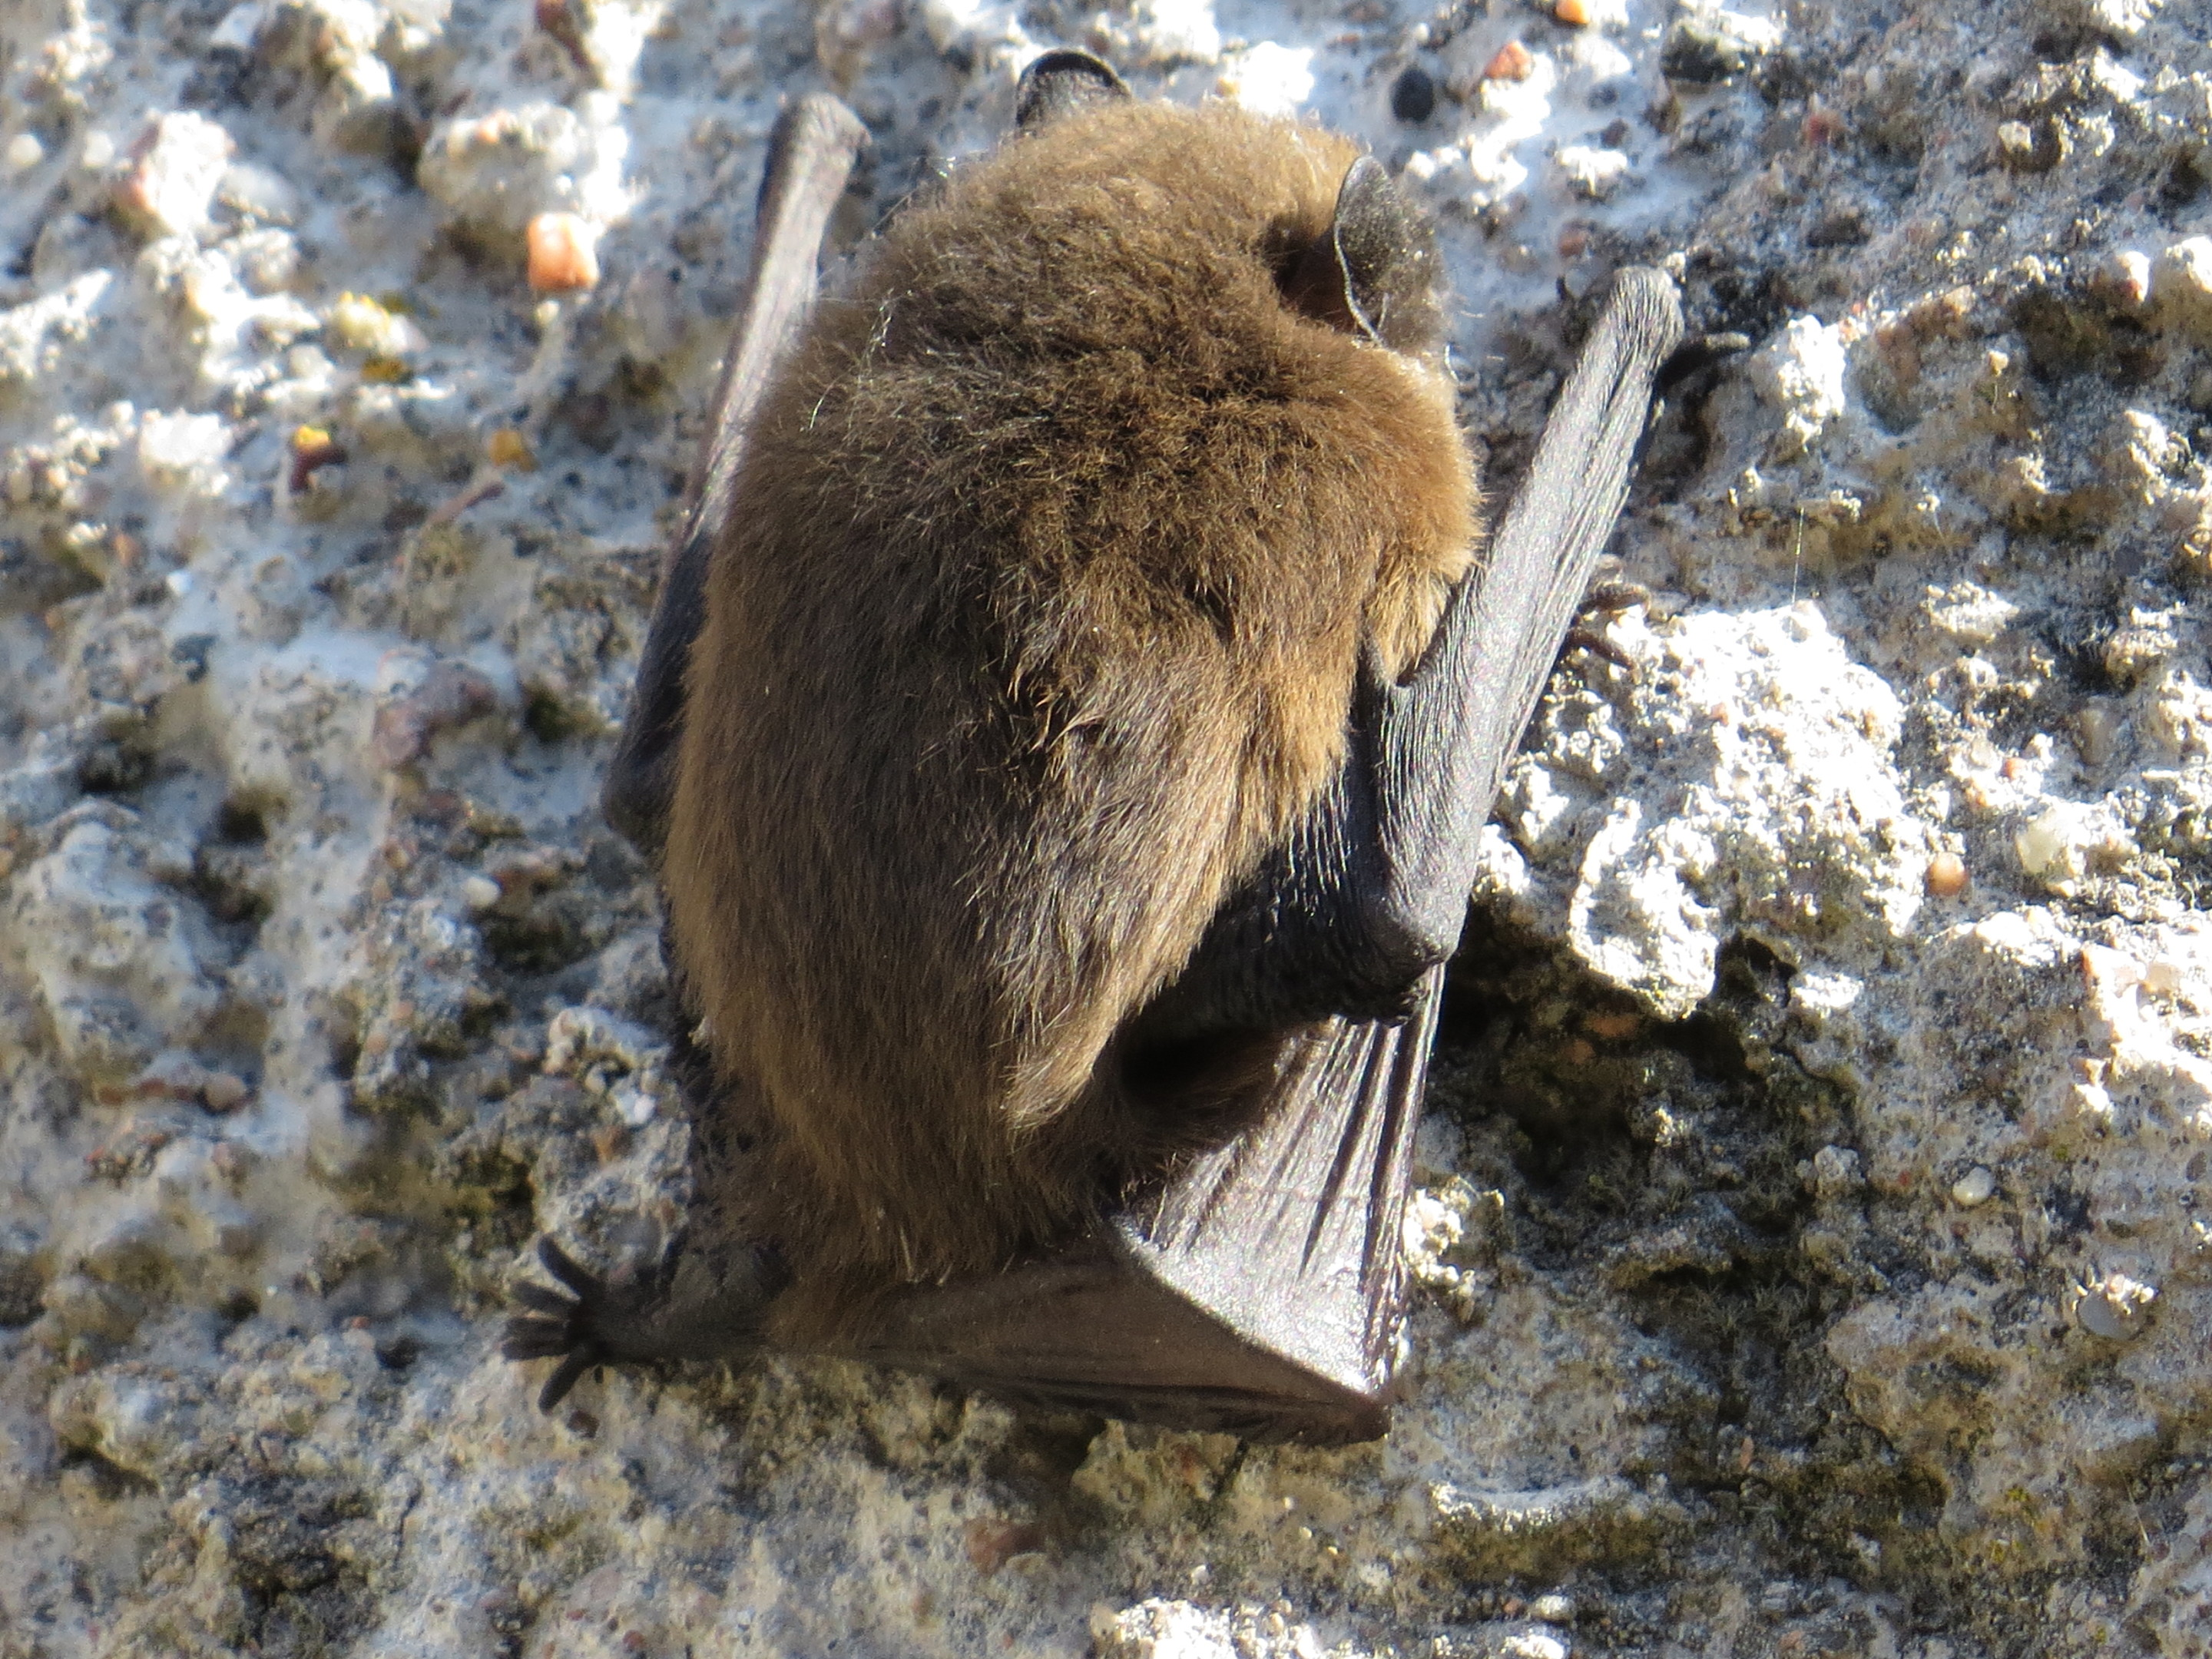 The female bat at the National Trust for Scotland's Drum Castle